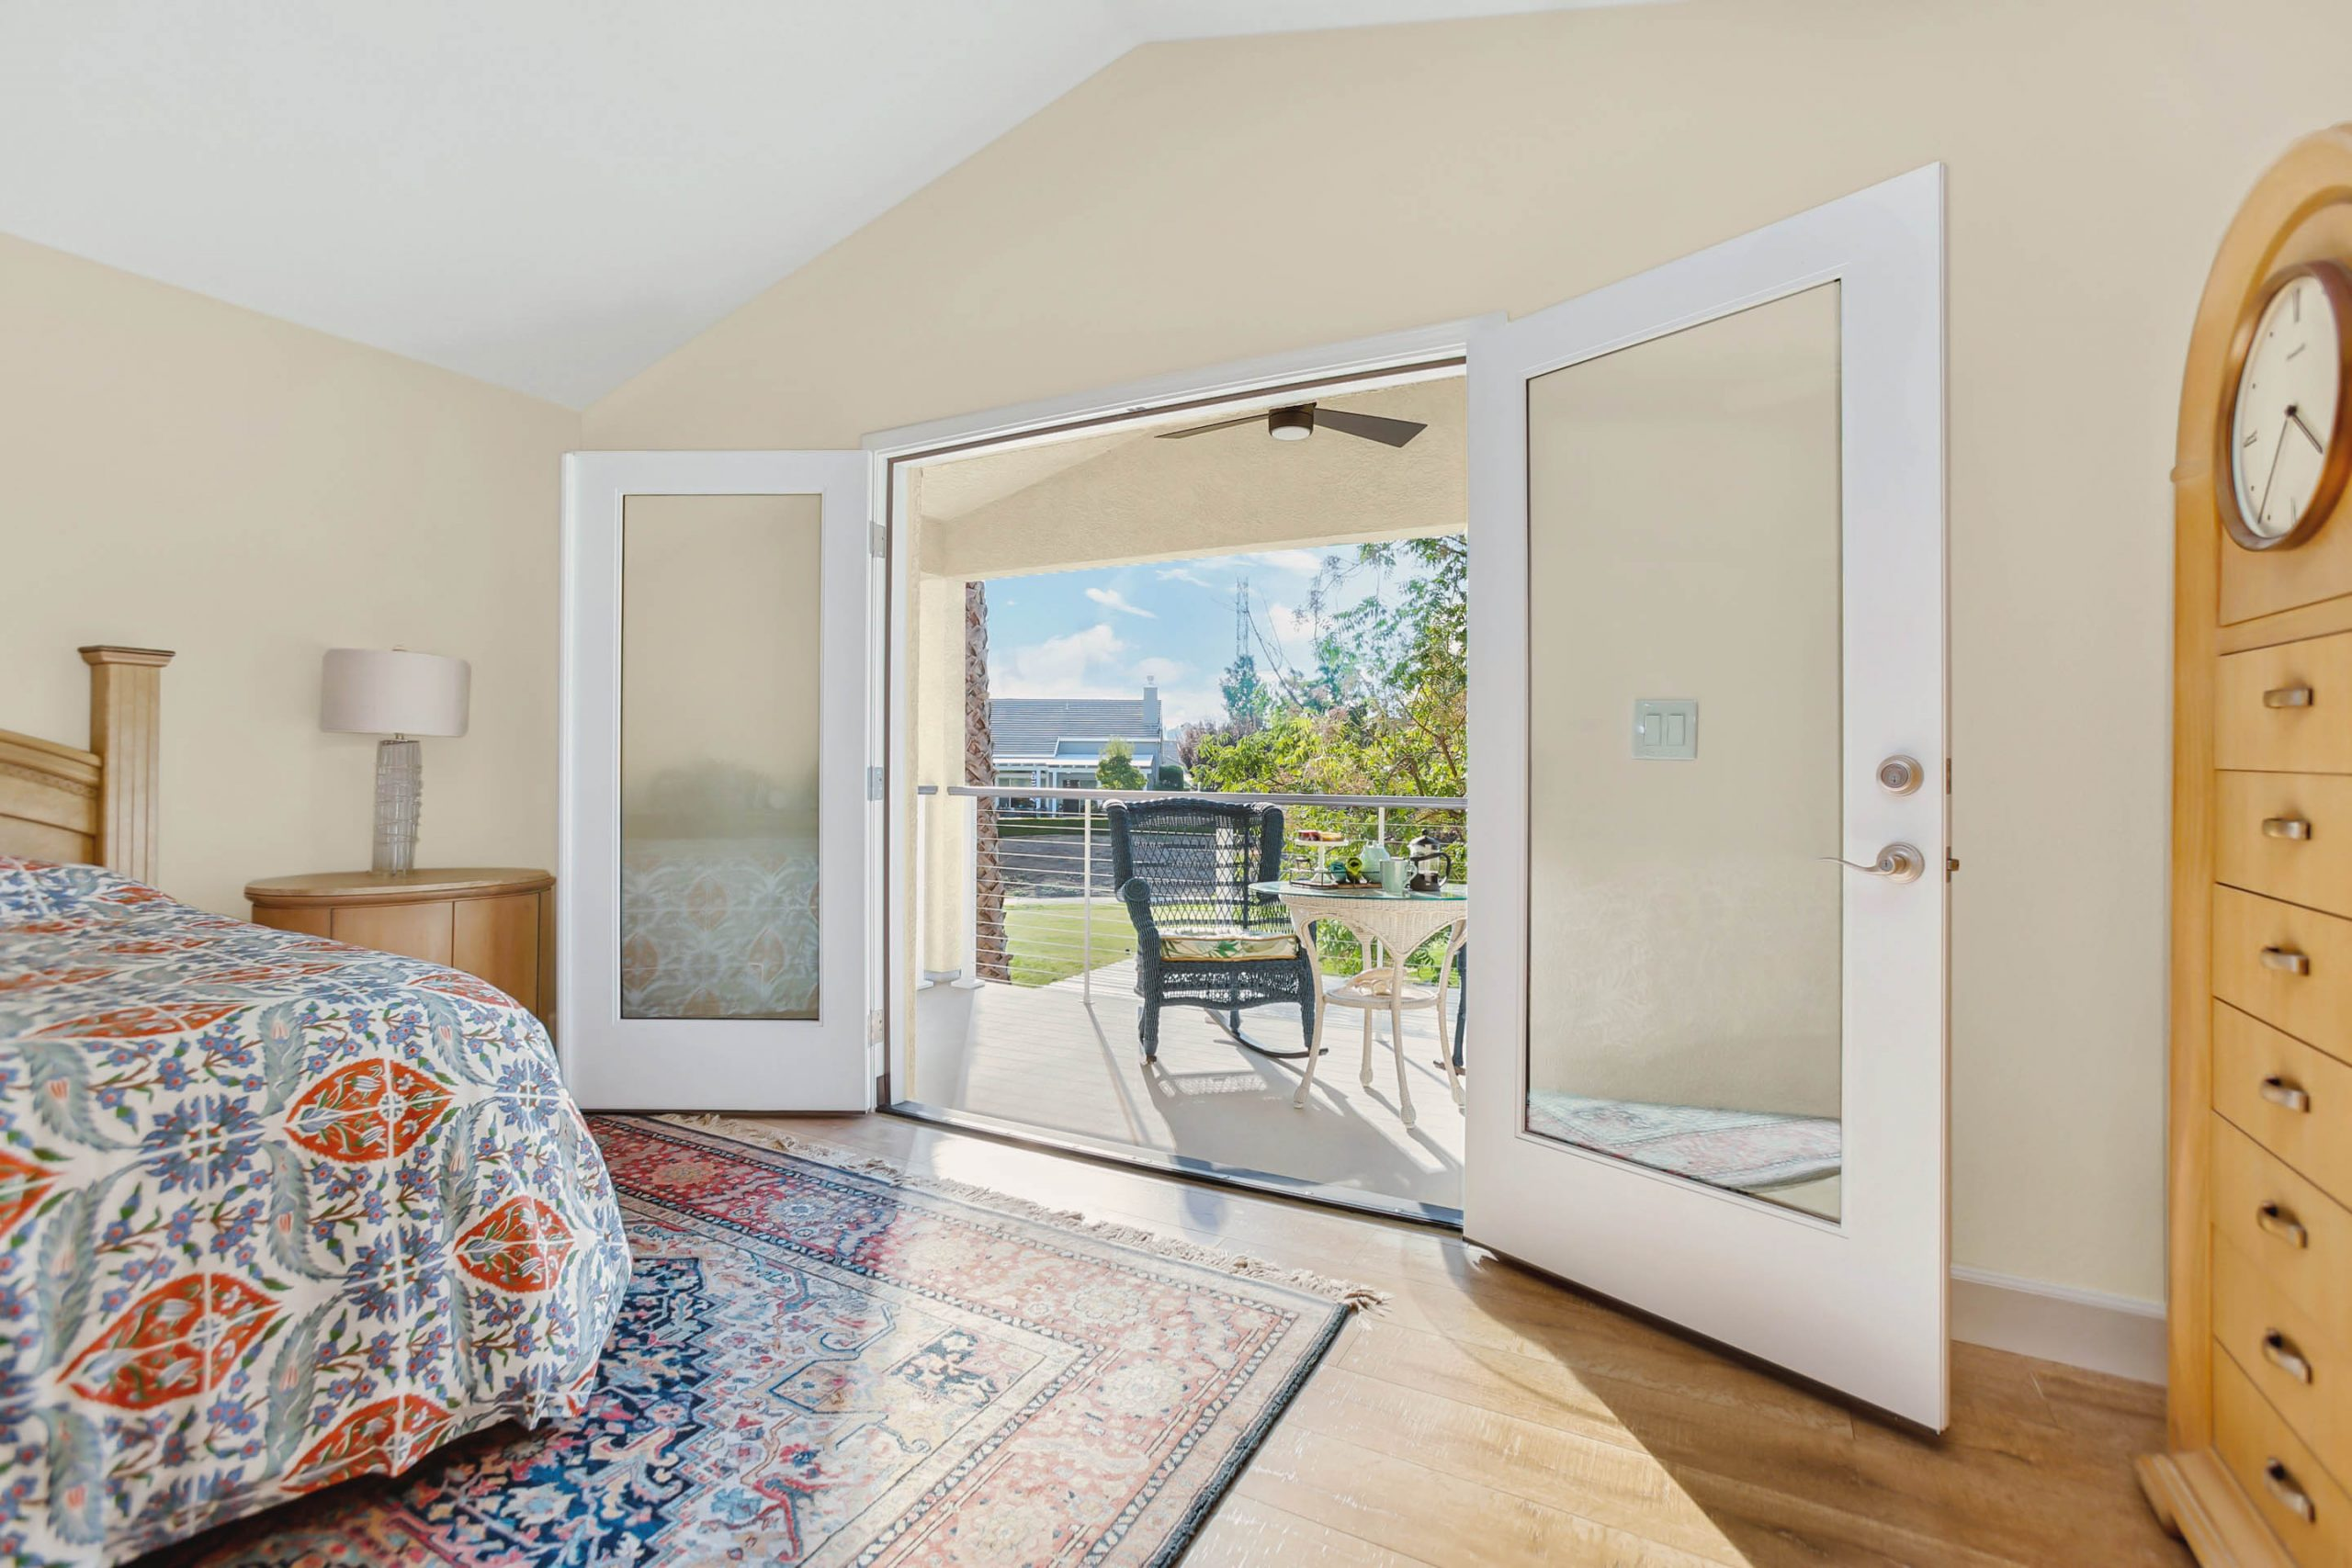 Voilà! A window gets removed and a pair of French doors installed with access to a spacious balcony overlooking the golf course.